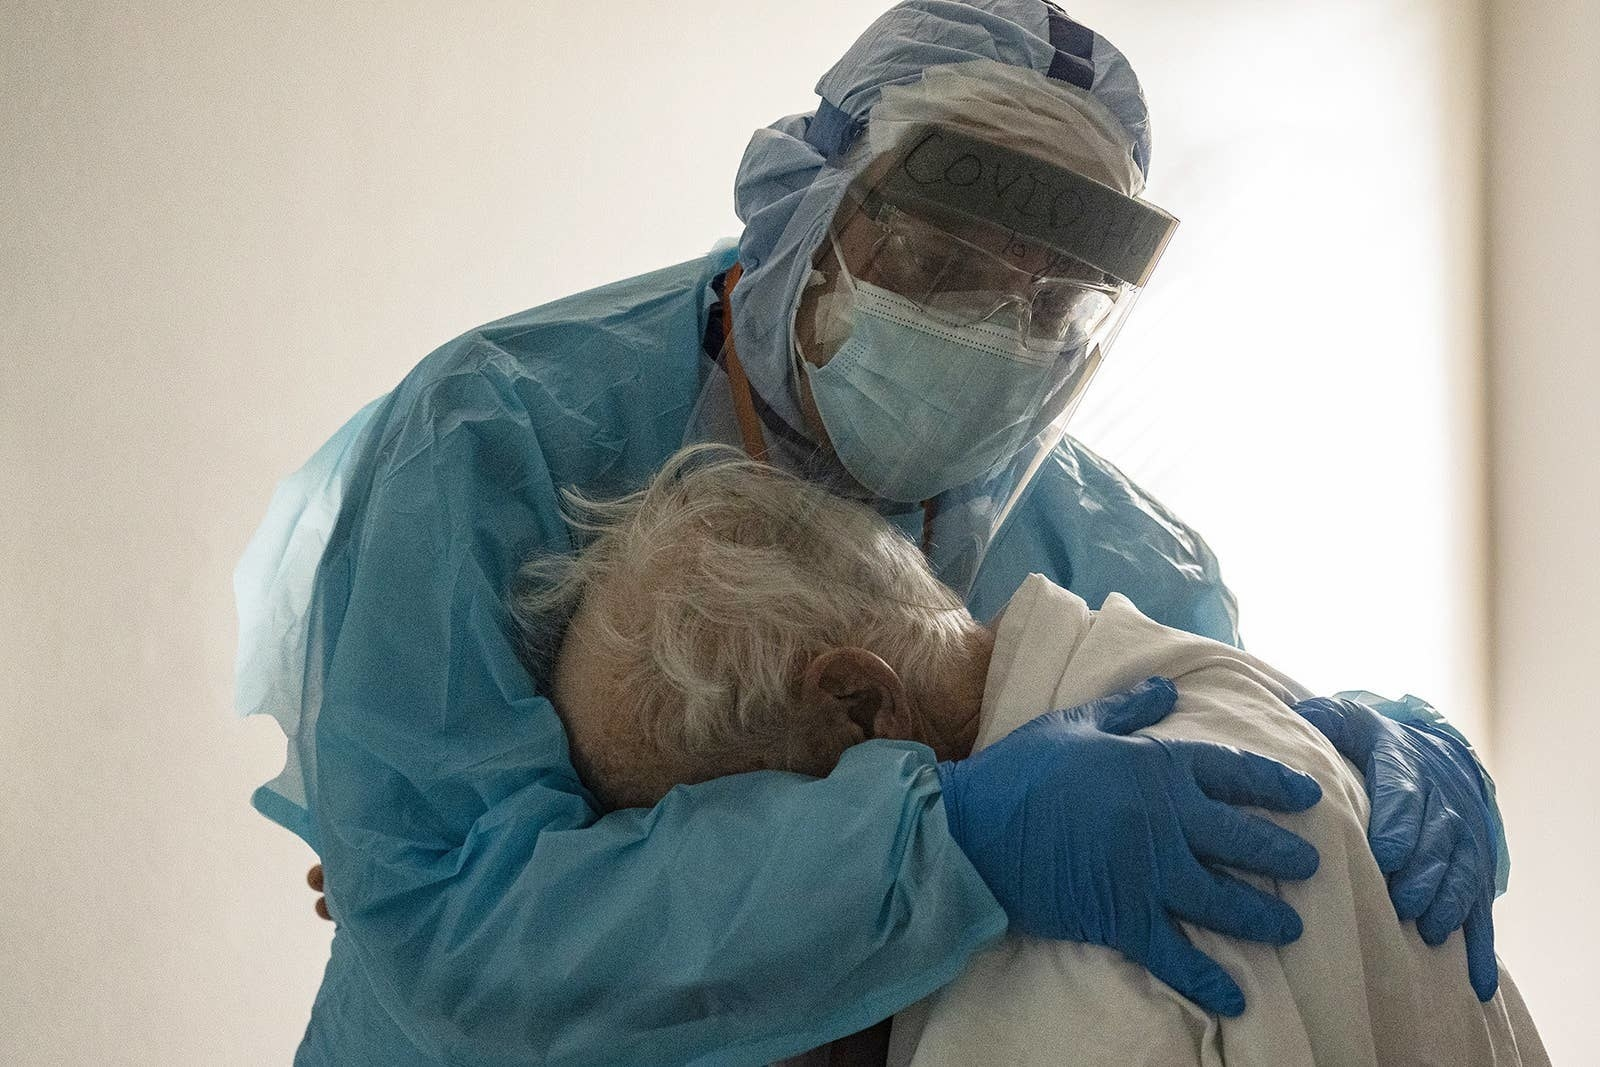 A doctor in full protective gear hugging a patient